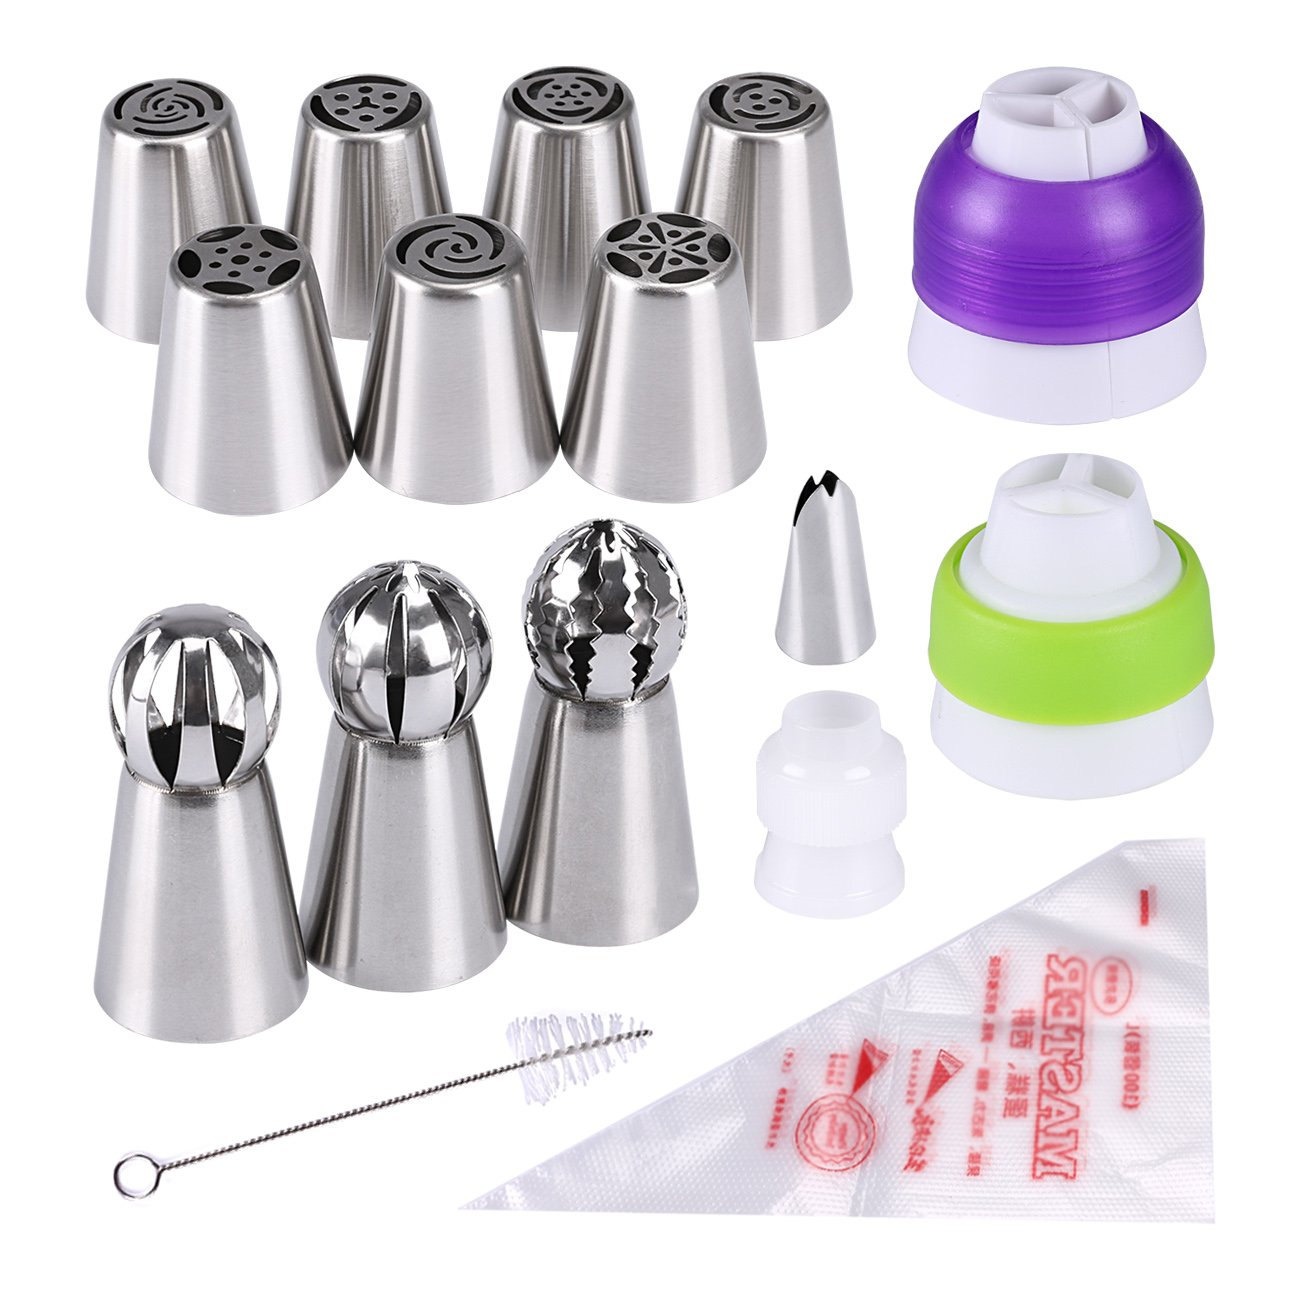 Cake Piping Nozzles, Seacue 25pcs Icing Piping Tips Set, Including 7 Russian Piping Tips/ 3 Torch Shaped Decorating Tips/ 1 Small Leaves Shaped Tip/ 3 Couplers/ Clean Brush/ 10 Disposable Piping Bags